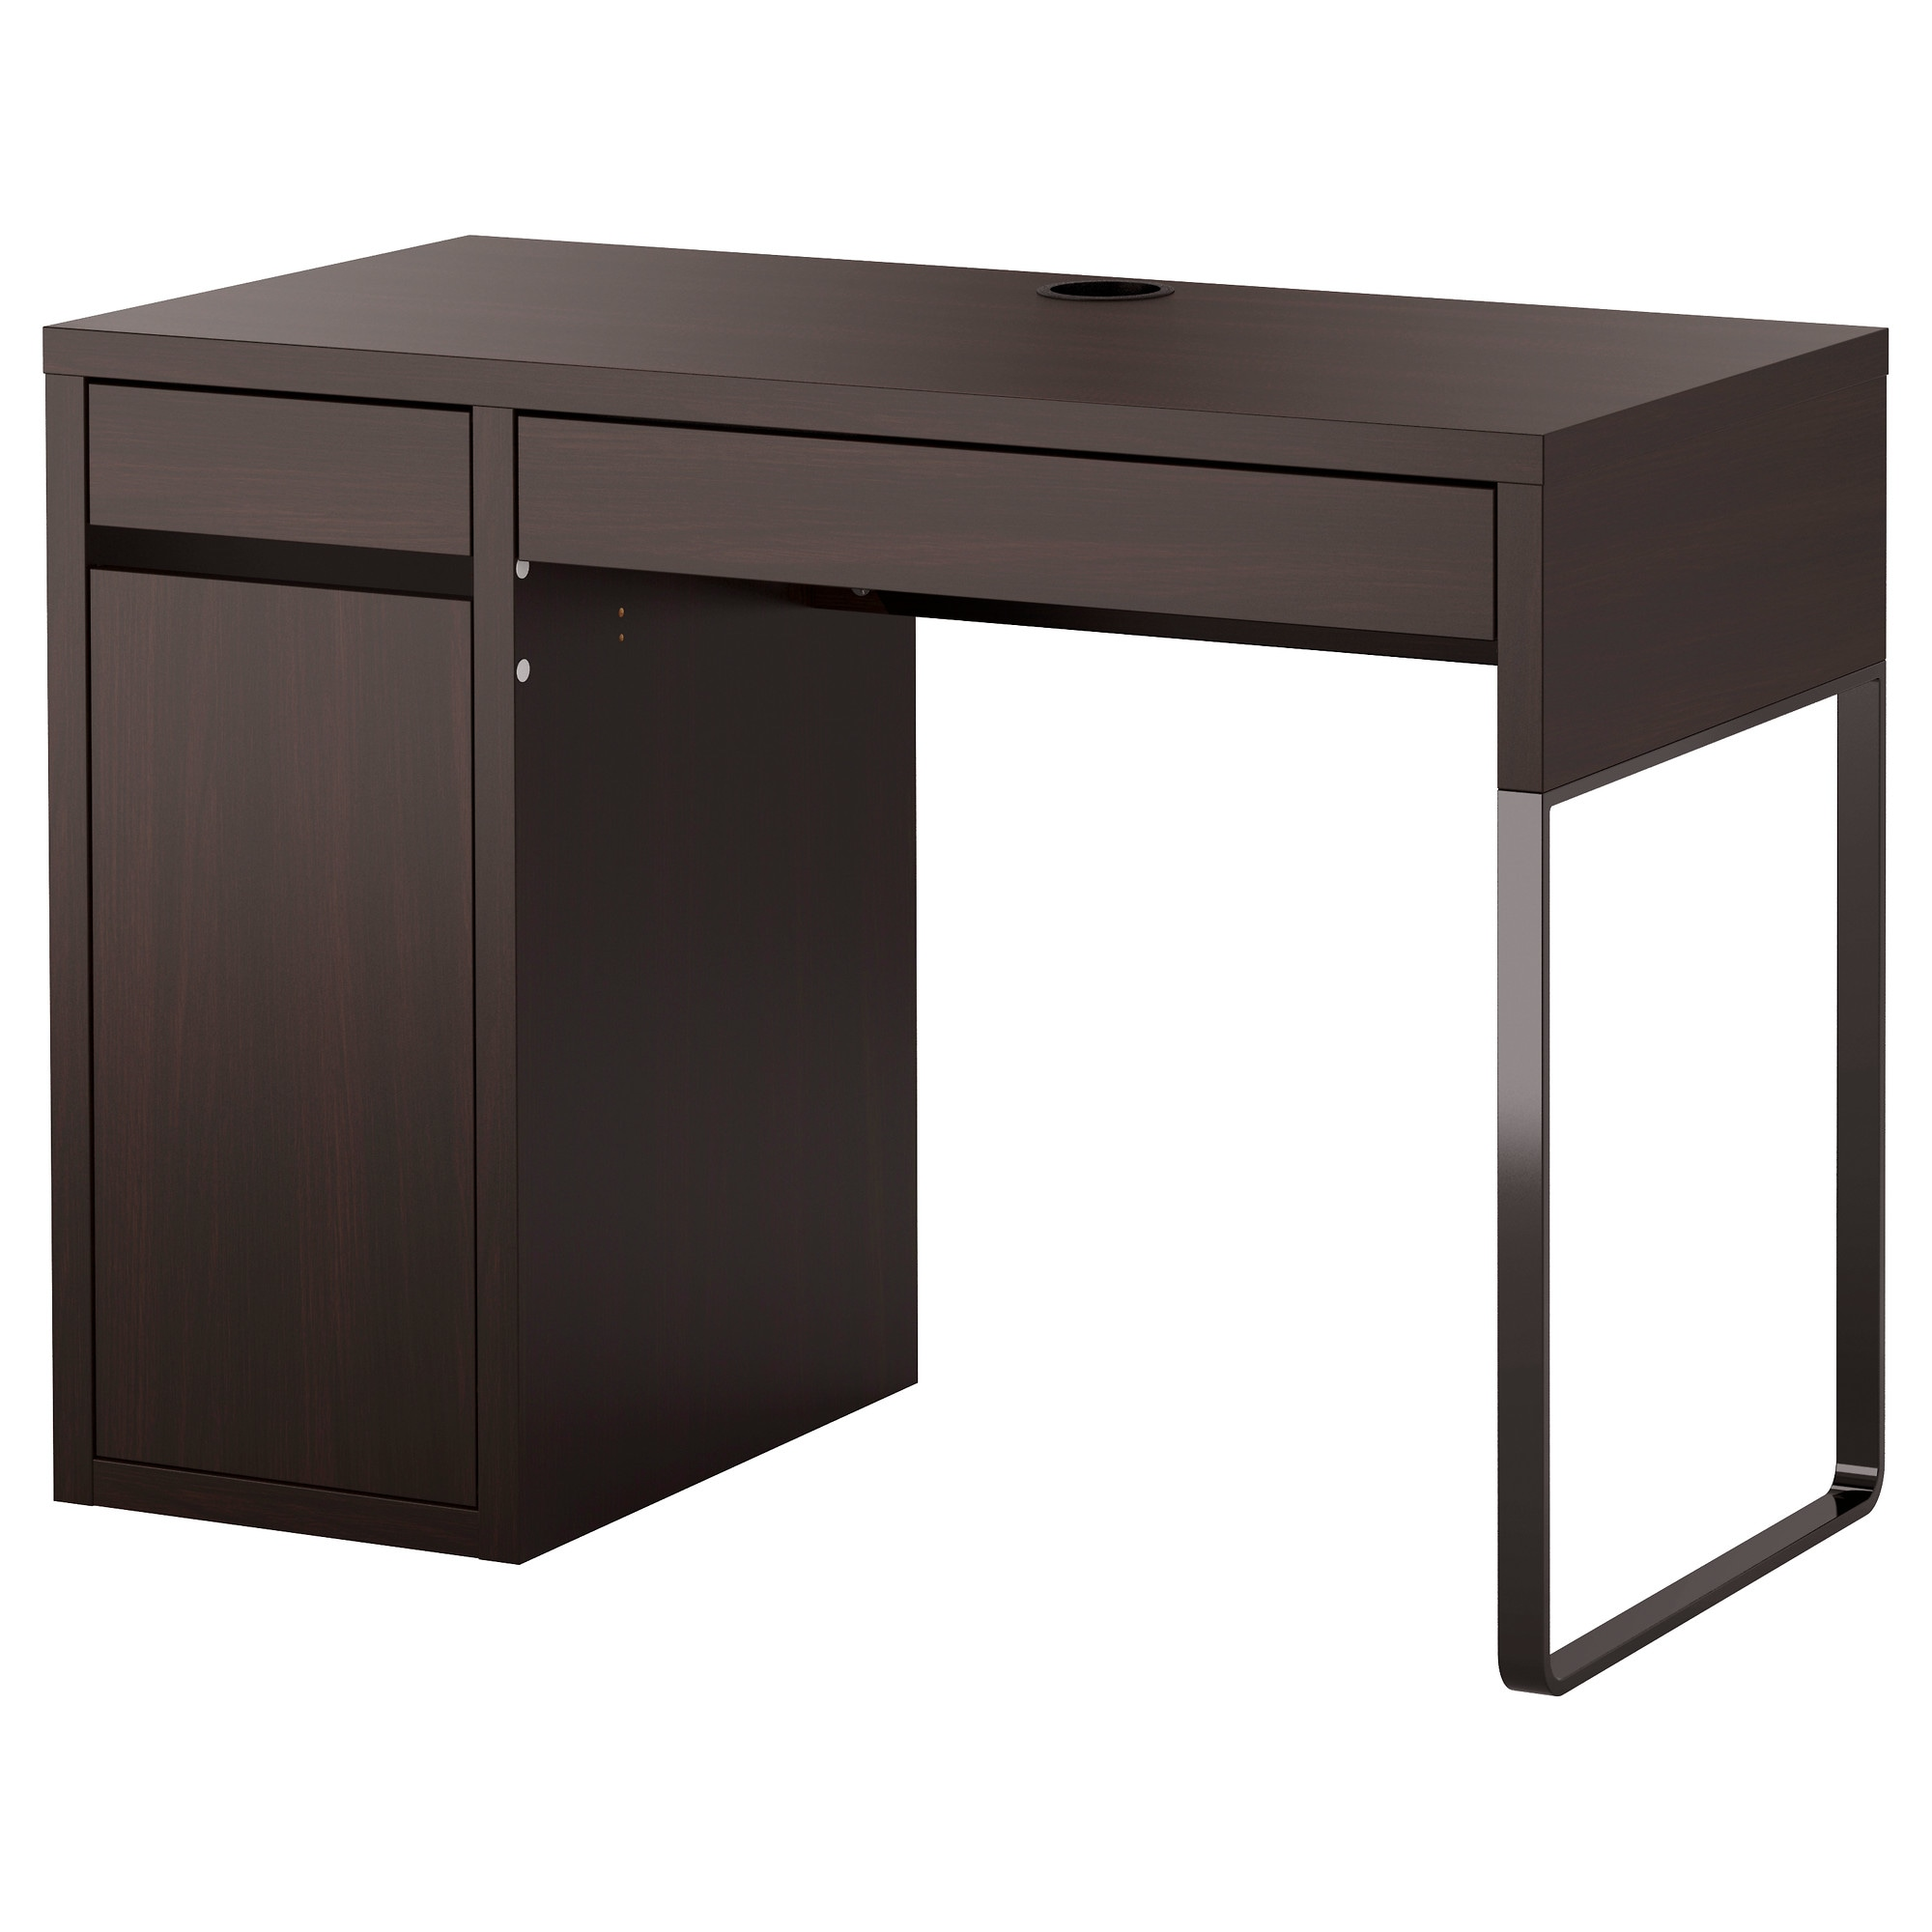 ikea office table. Ikea Office Table. Table K S